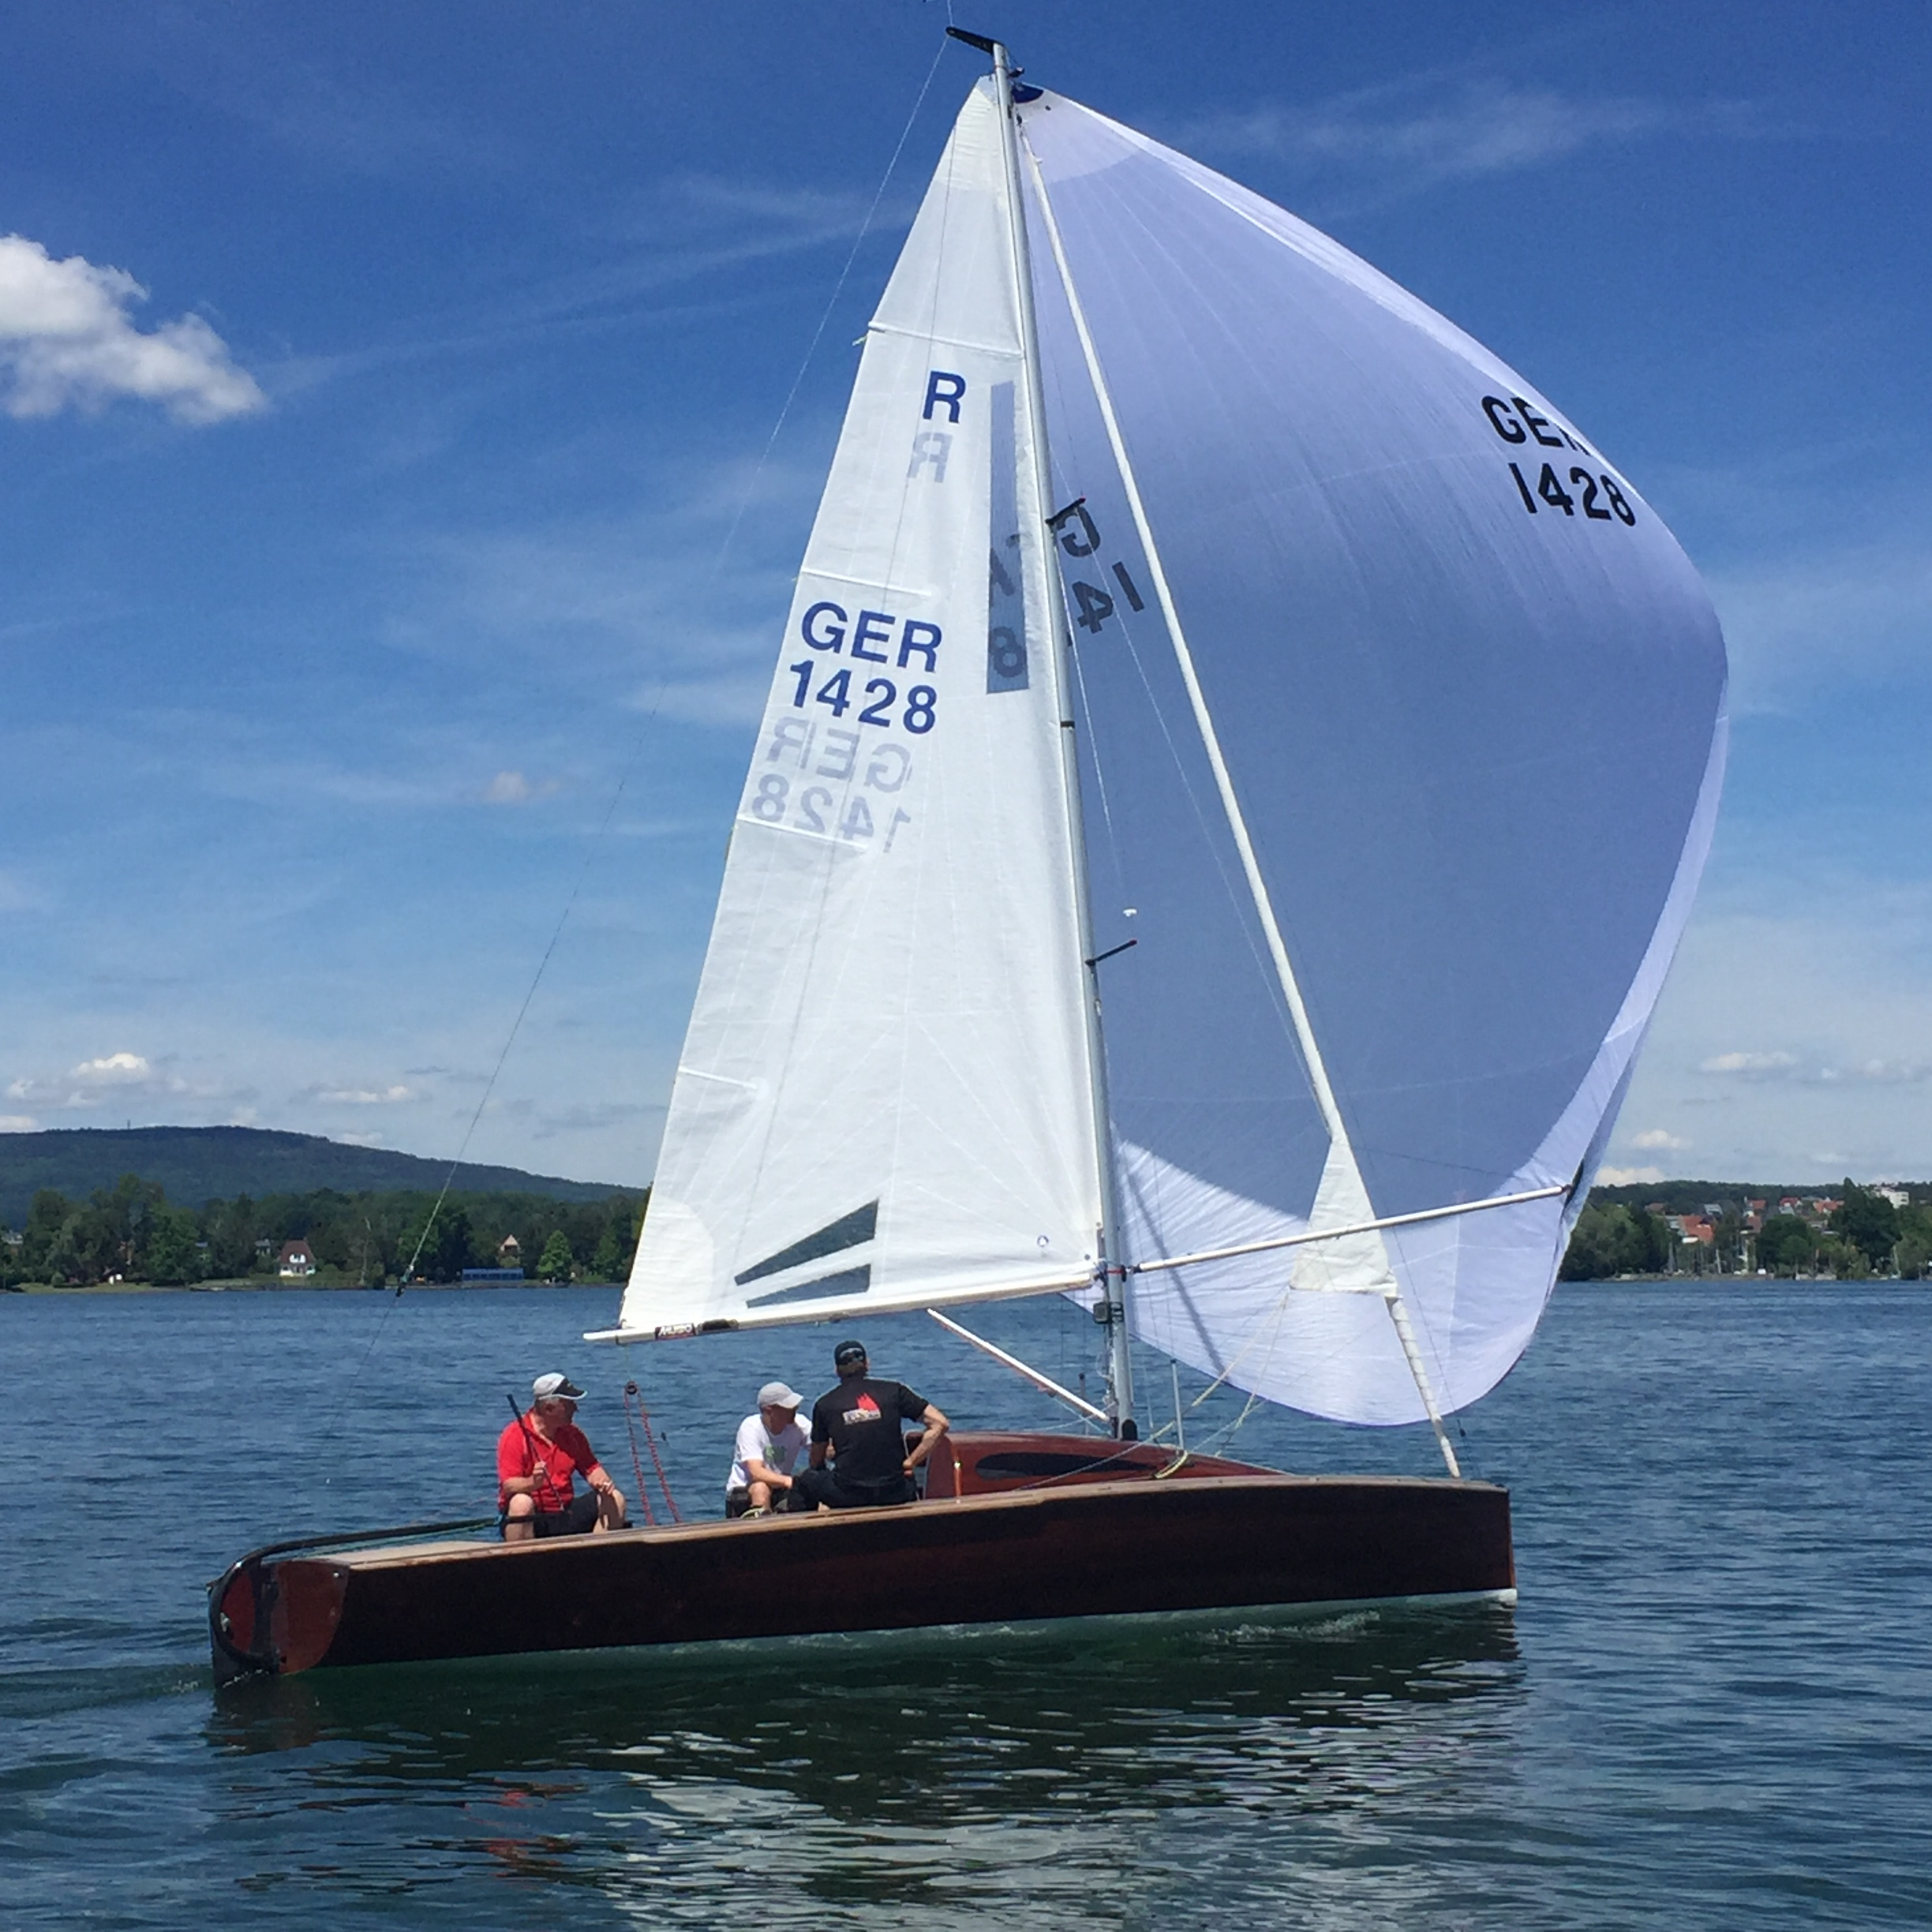 20er Bodensee Cup 2019